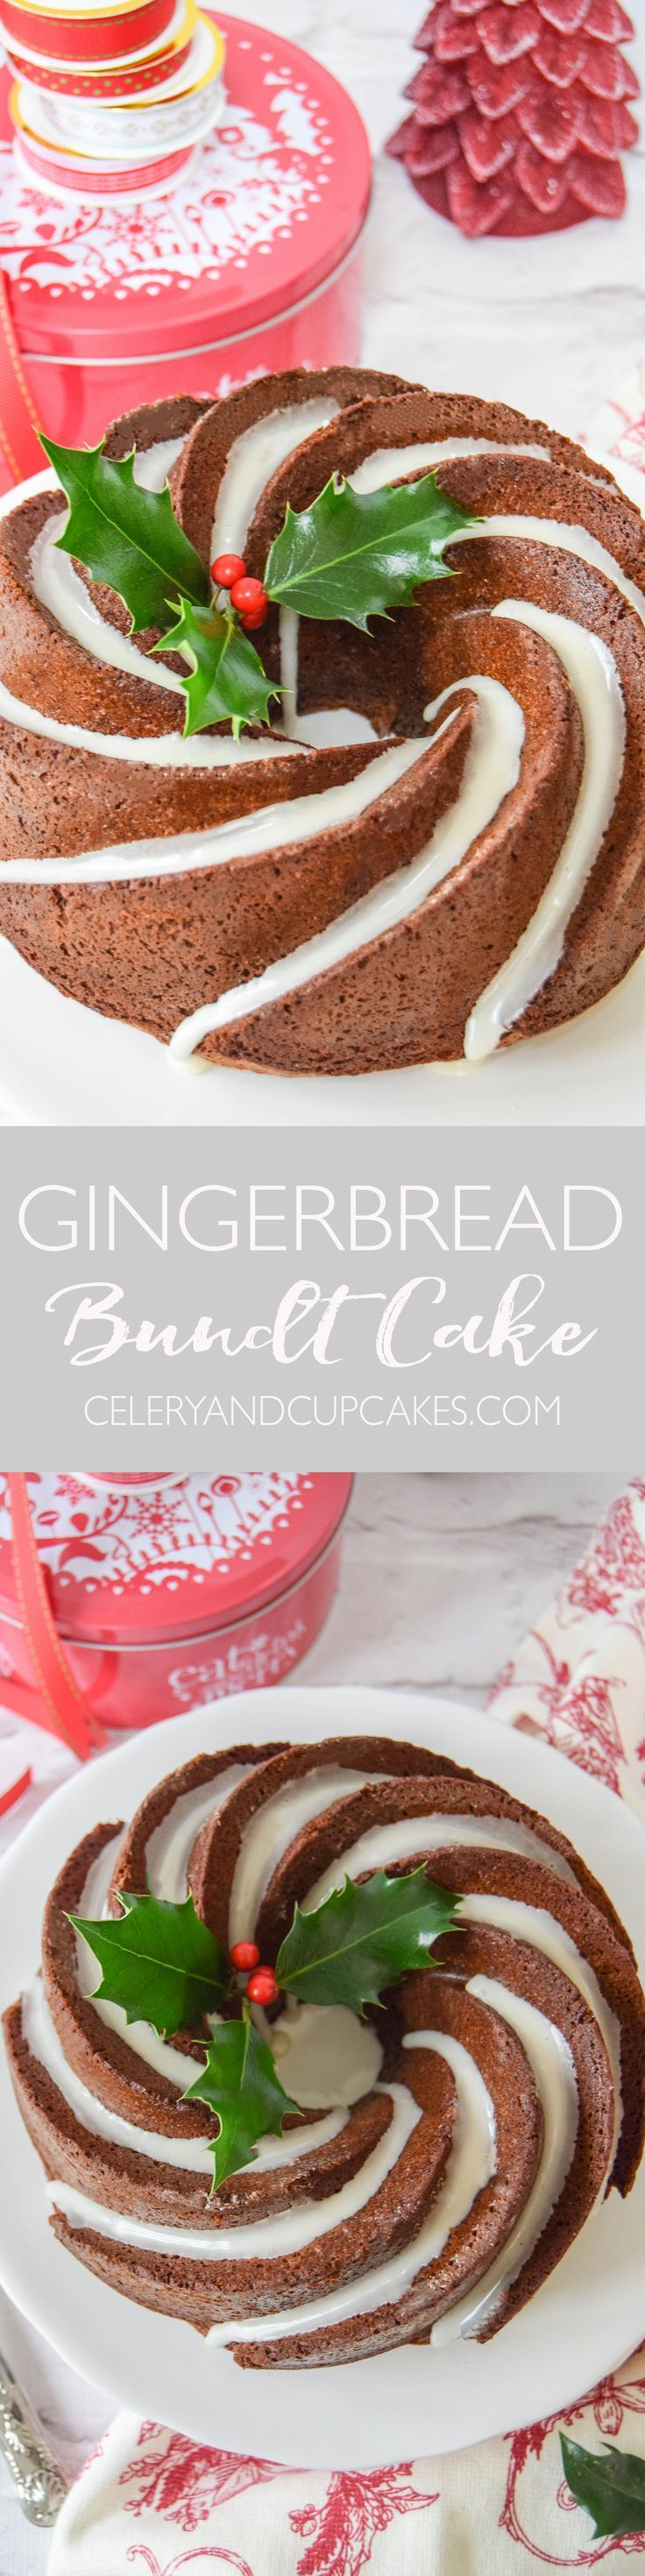 A delicious sticky spiced bundt cake that is perfect to serve to guests over the festive season.